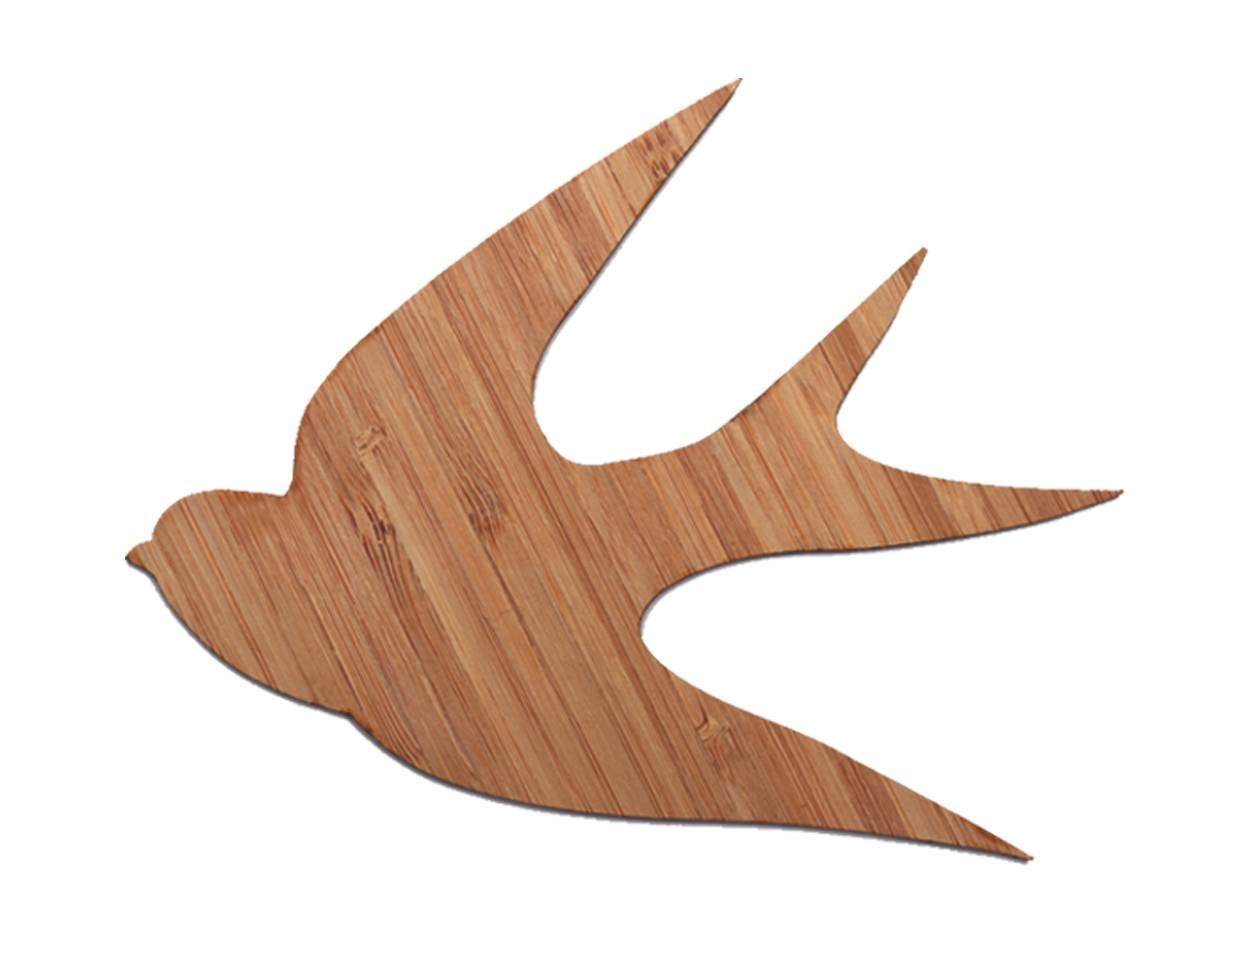 Bamboo Flock Of Birds Wall Art – Set Of 3 Flying Birds In Inside Recent Flock Of Birds Wall Art (View 3 of 25)